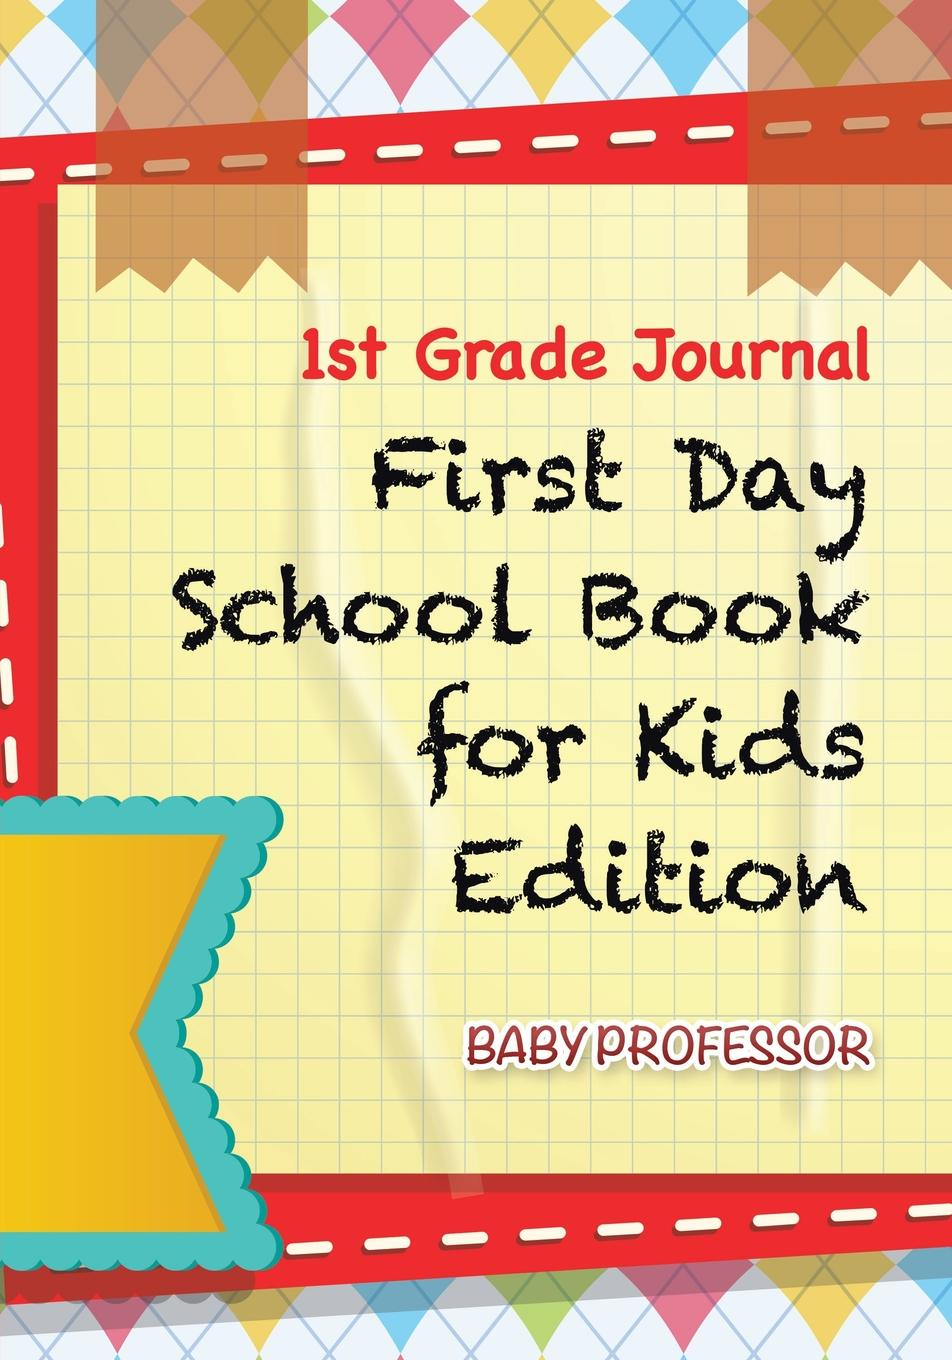 Baby Professor 1st Grade Journal . First Day School Book for Kids Edition цена и фото